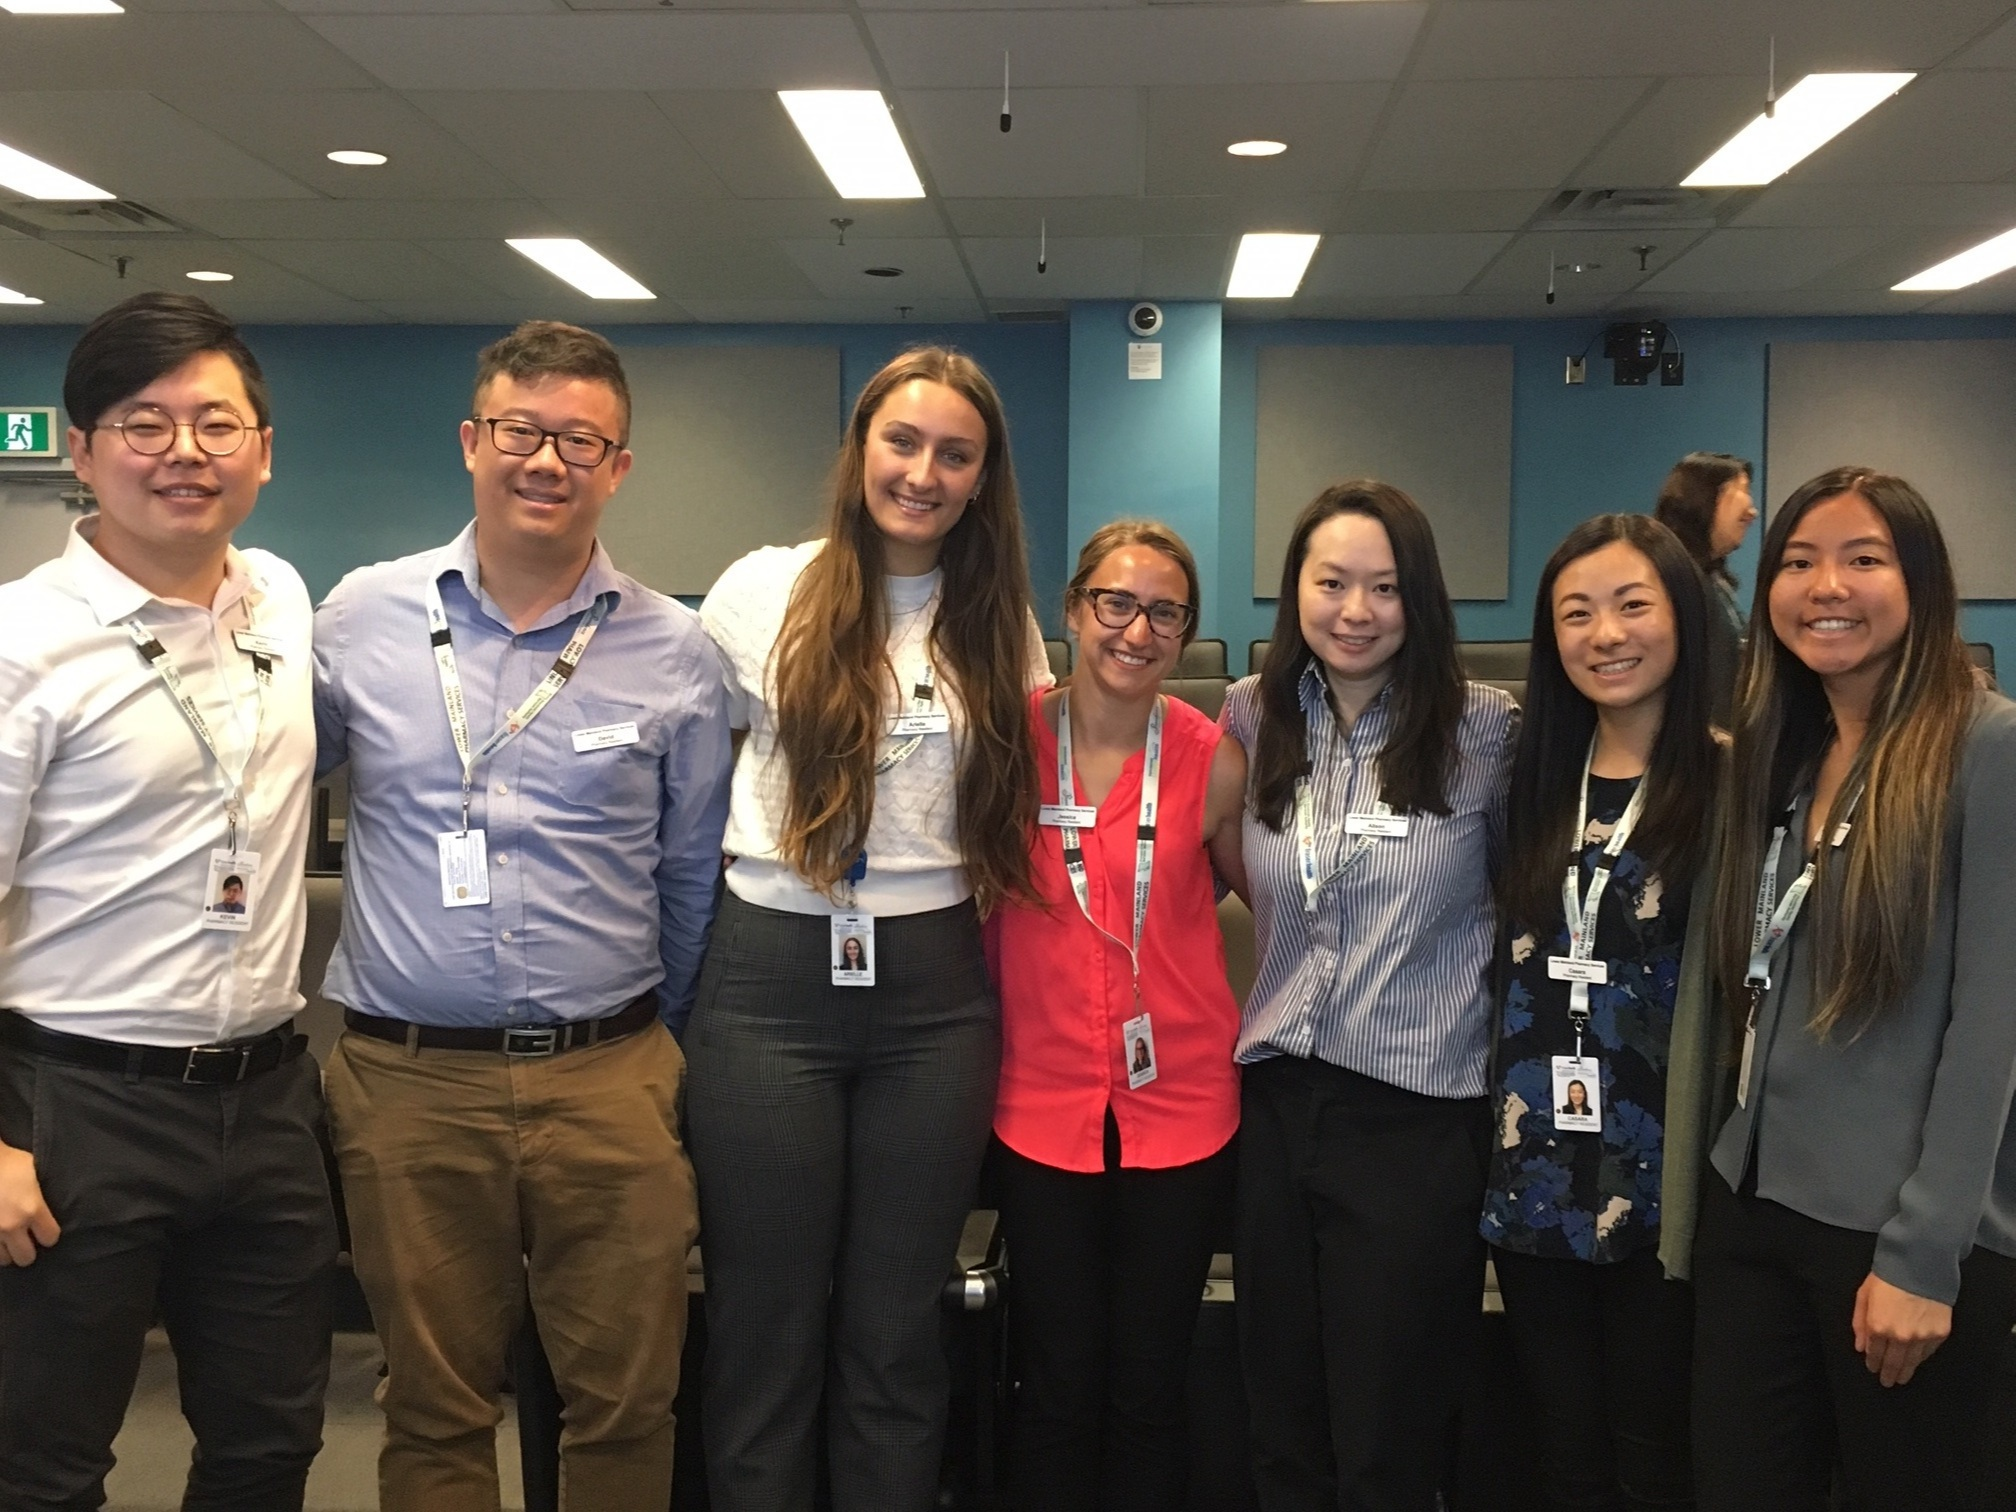 SPH / LGH Pod (from left to right: Kevin, David, Arielle, Jessica, Alison, Casara and Kaitlyn)